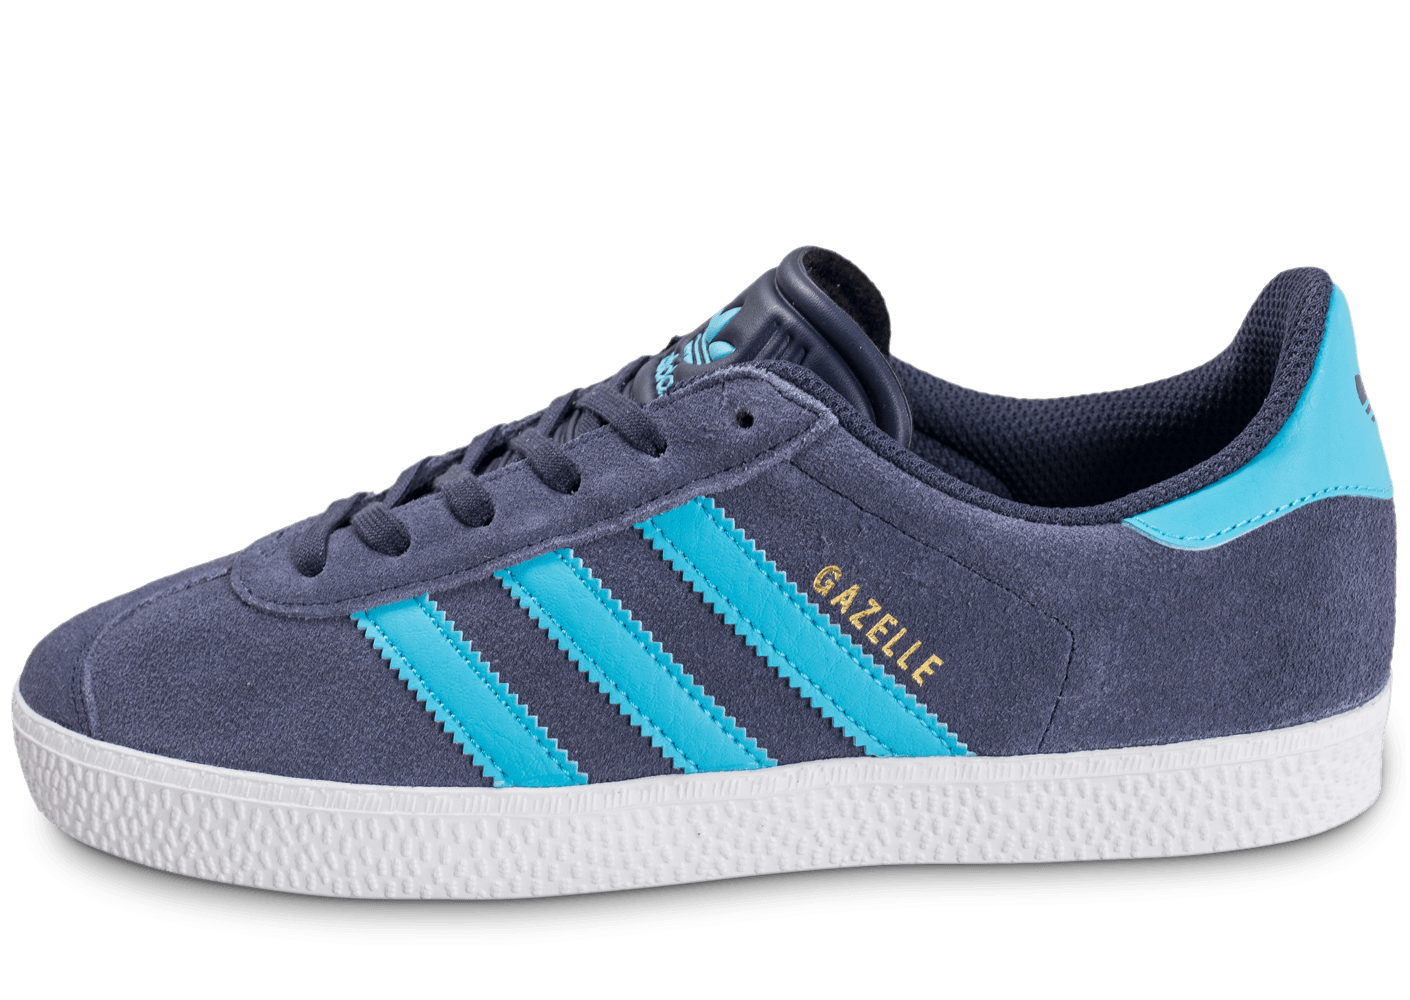 Gazelle Adidas Chausport Chaussures Junior Bleue 9bW2EeDIYH